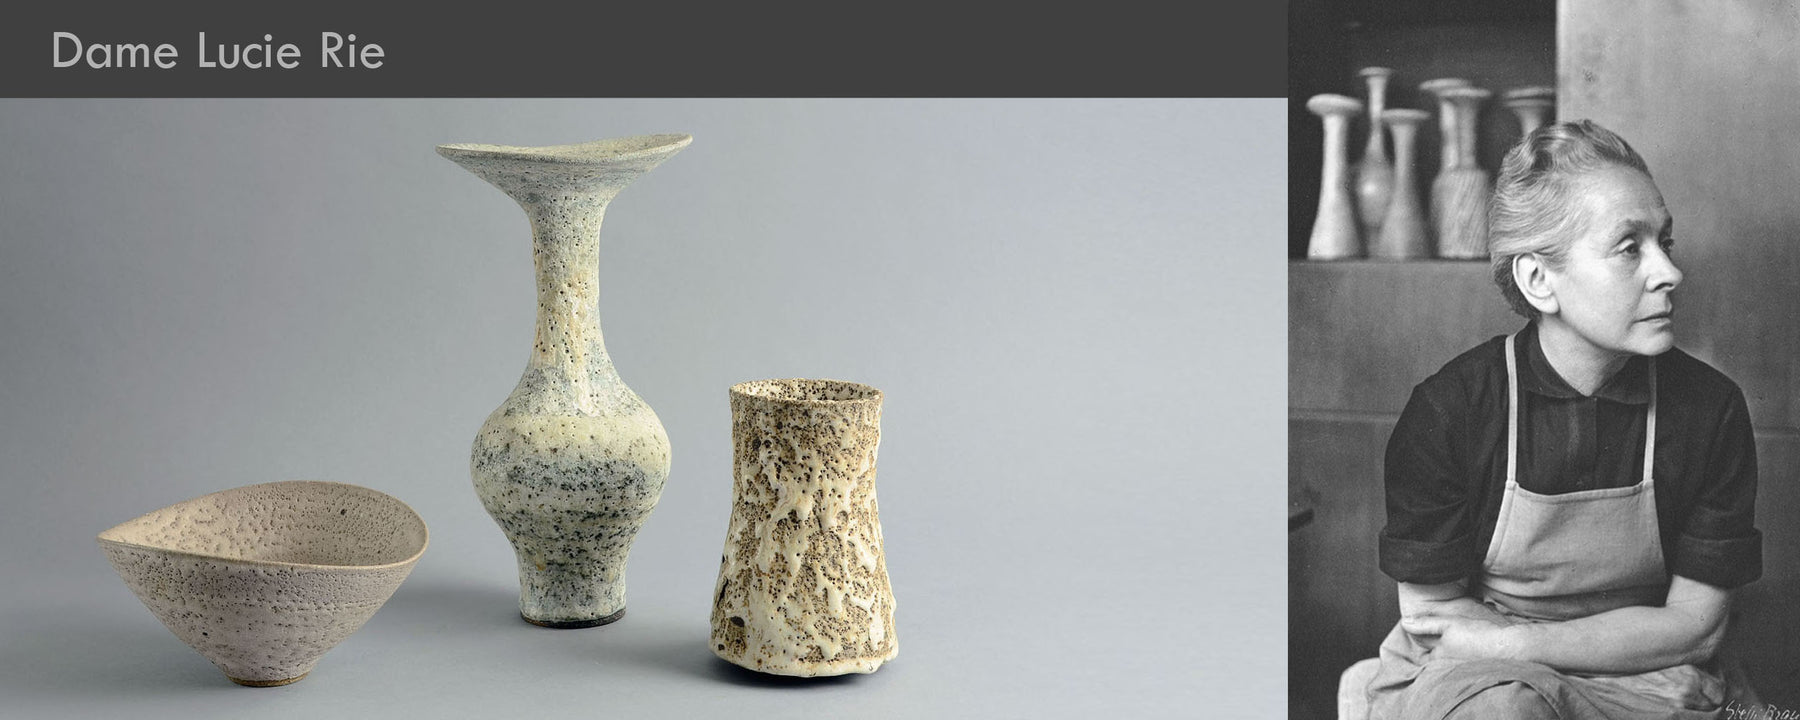 Dame Lucie Rie, Modernist British Art Pottery